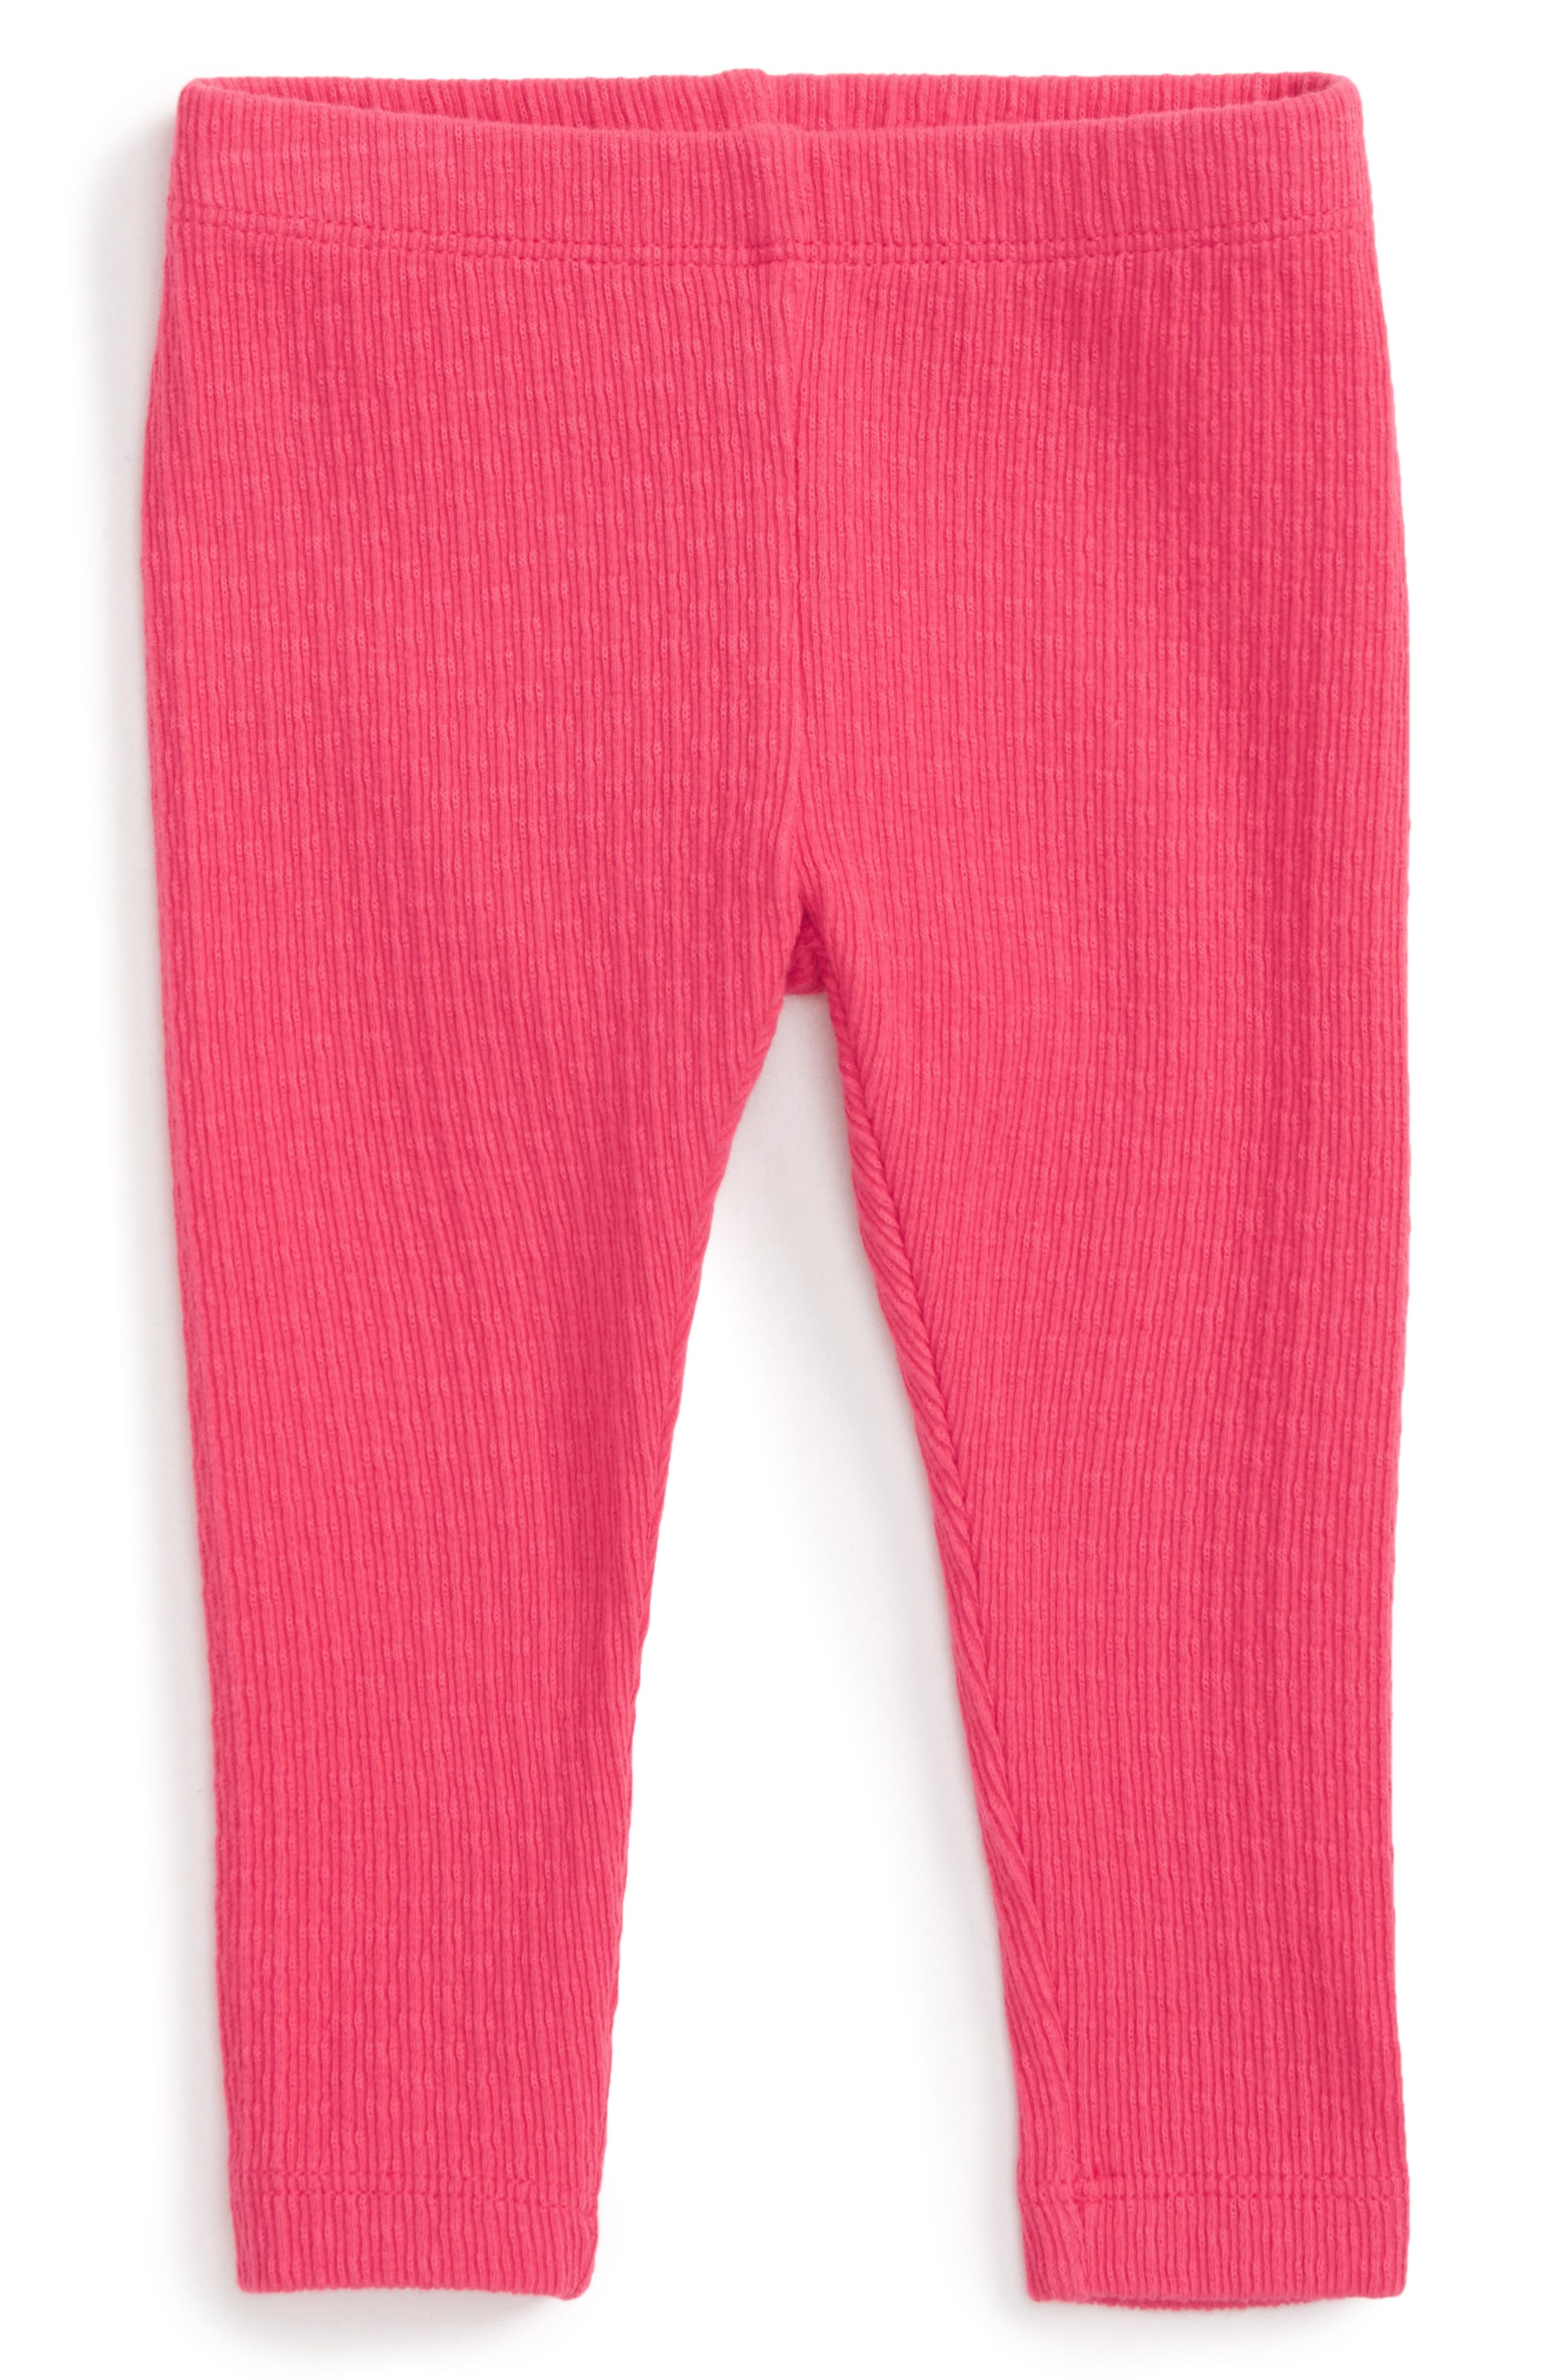 Main Image - Tea Collection Pointelle Leggings (Baby Girls)